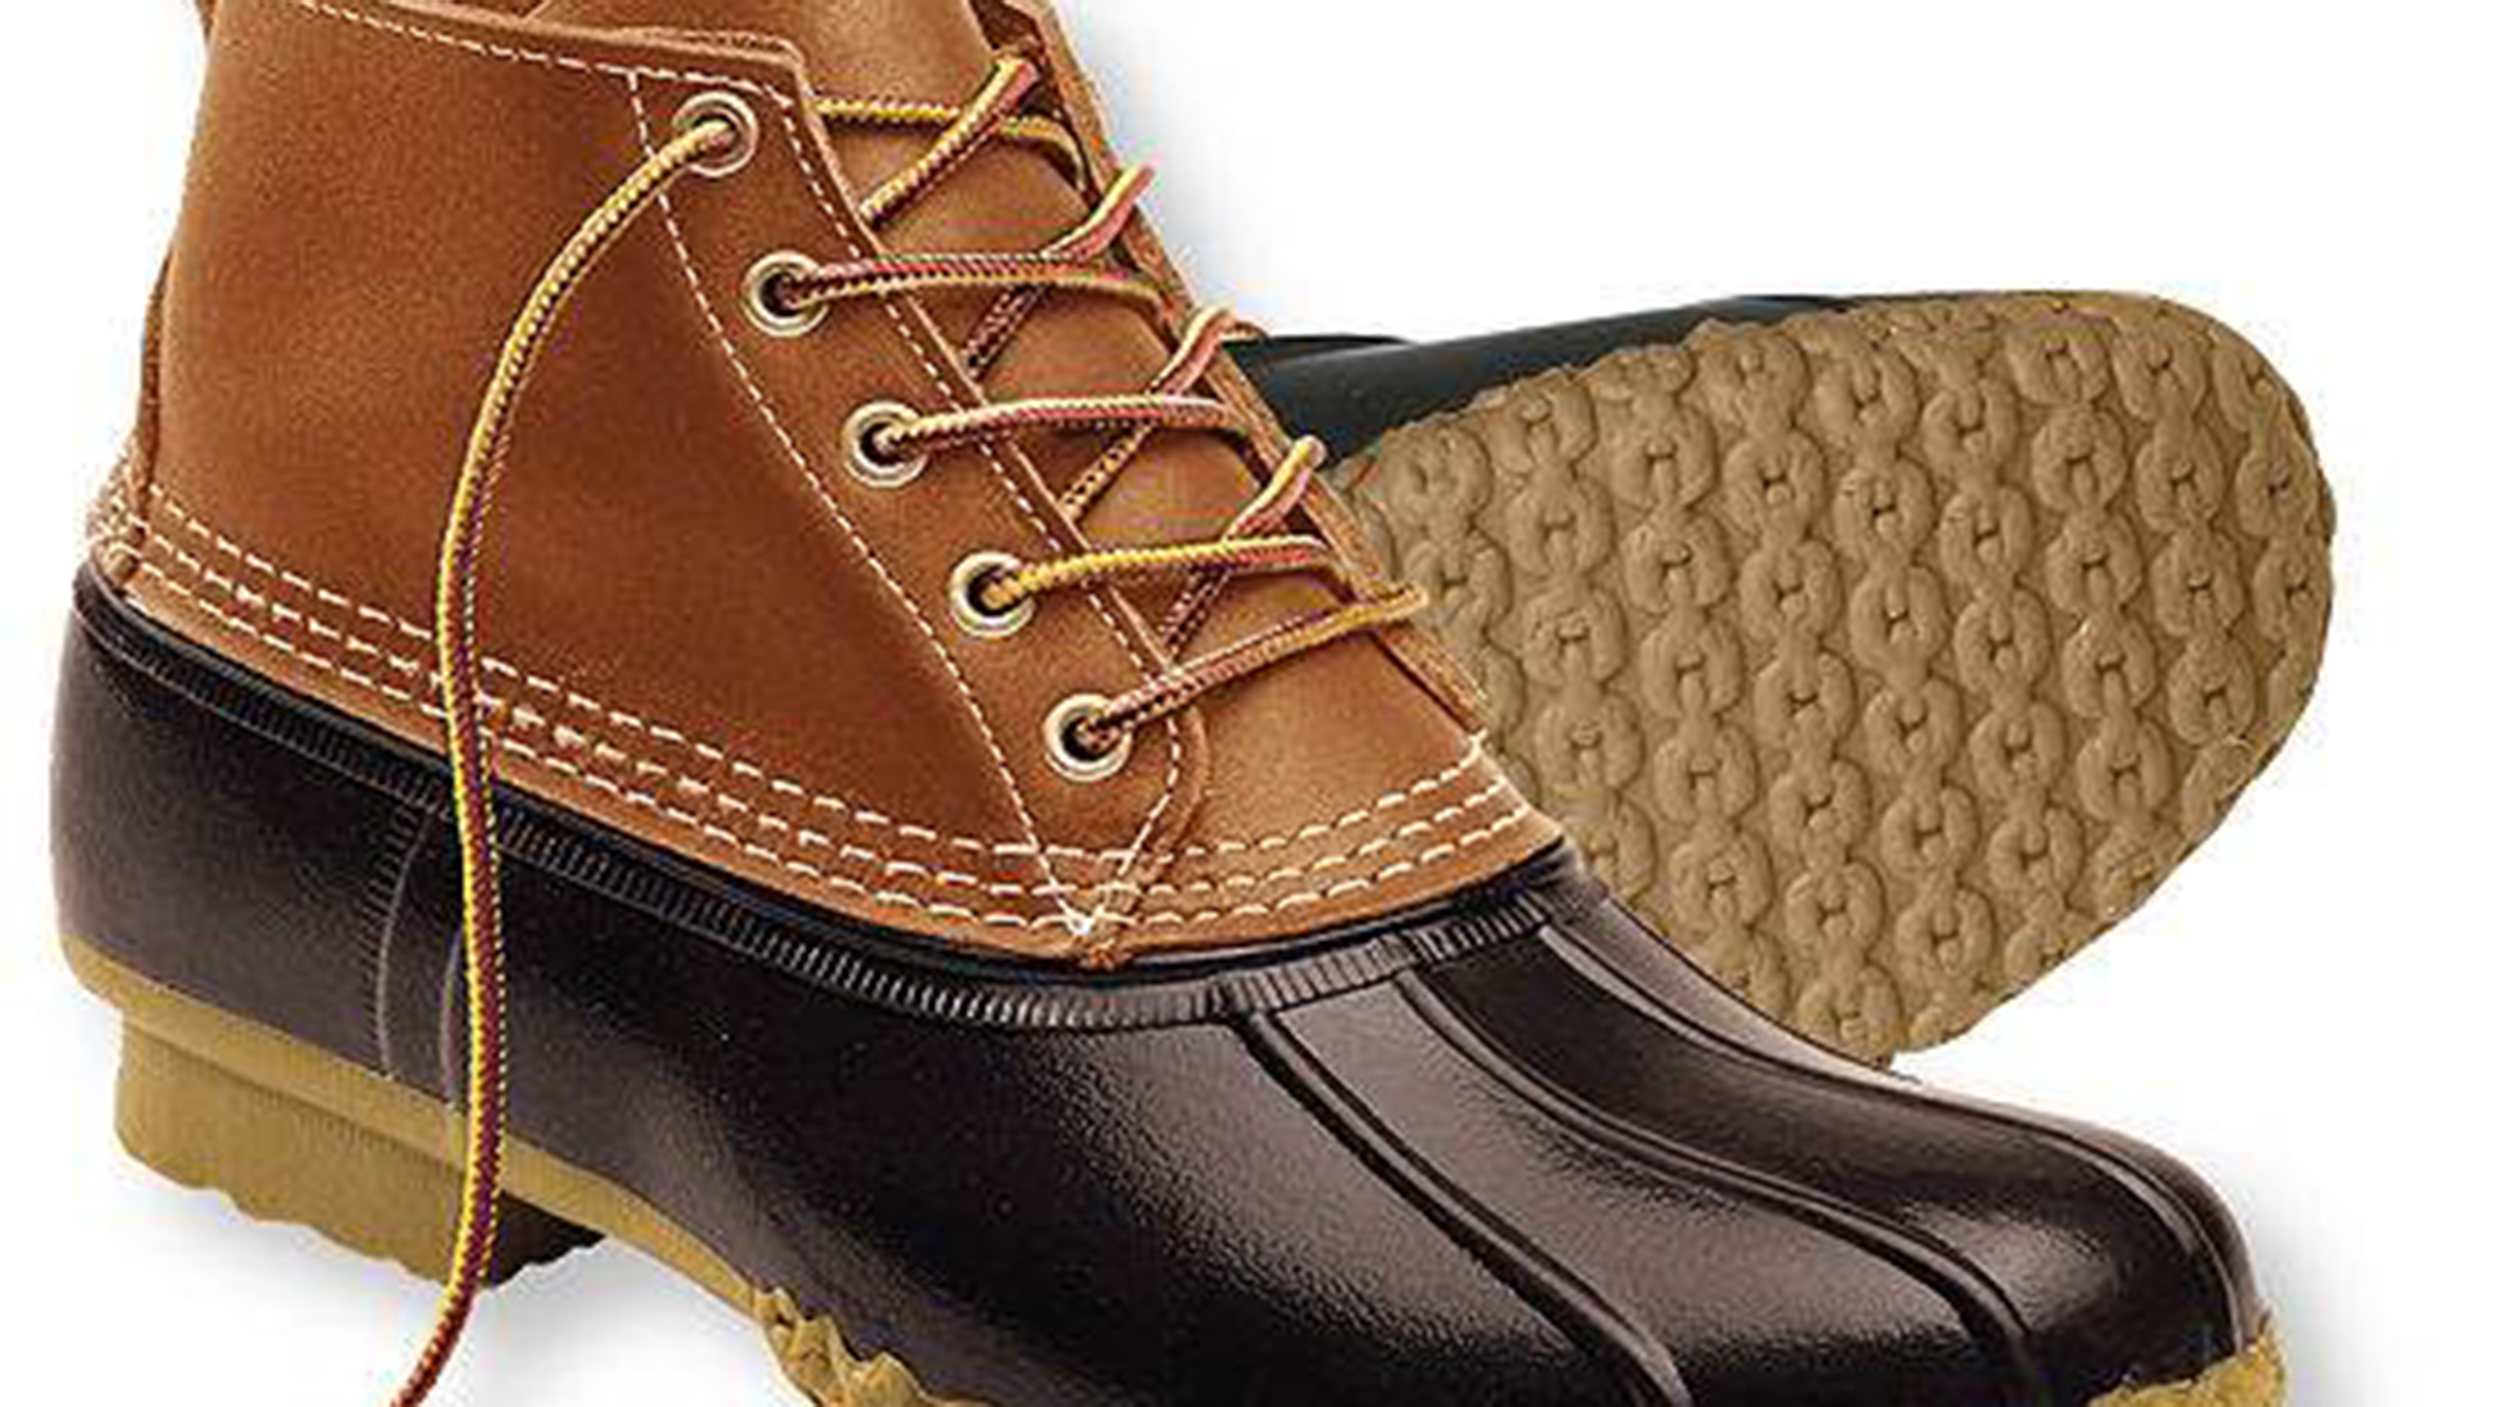 On the hunt for L.L. Bean 'duck' boots? Here are a few alternatives